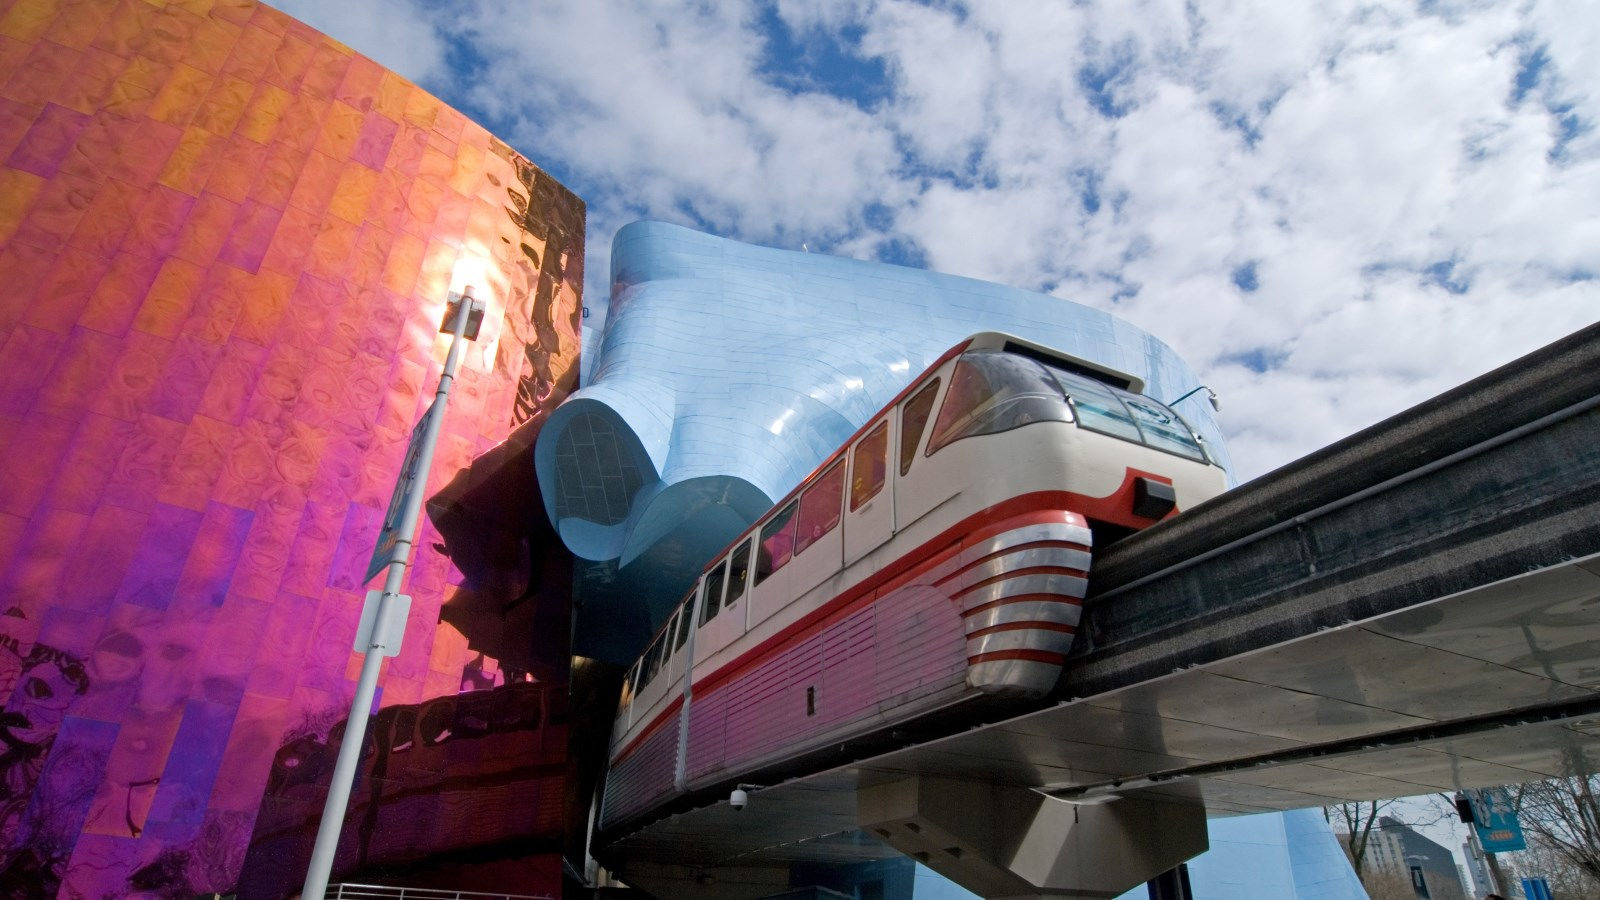 Things to Do in Seattle - Experience Music Project & Science Fiction Museum